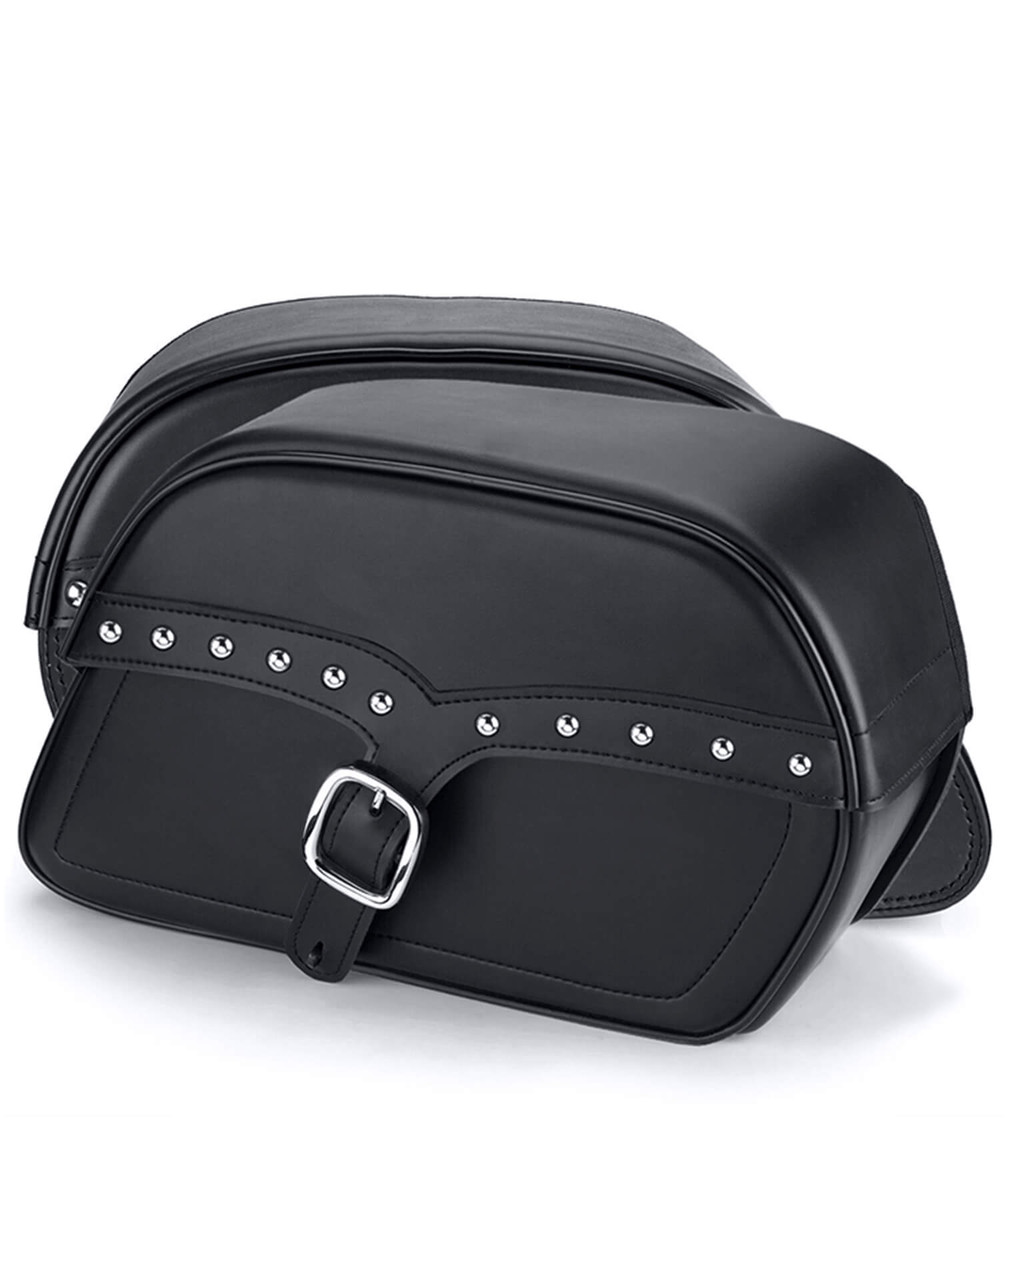 Triumph Rocket III Roadster SS Slanted Studded Medium Motorcycle Saddlebags Both Bags View